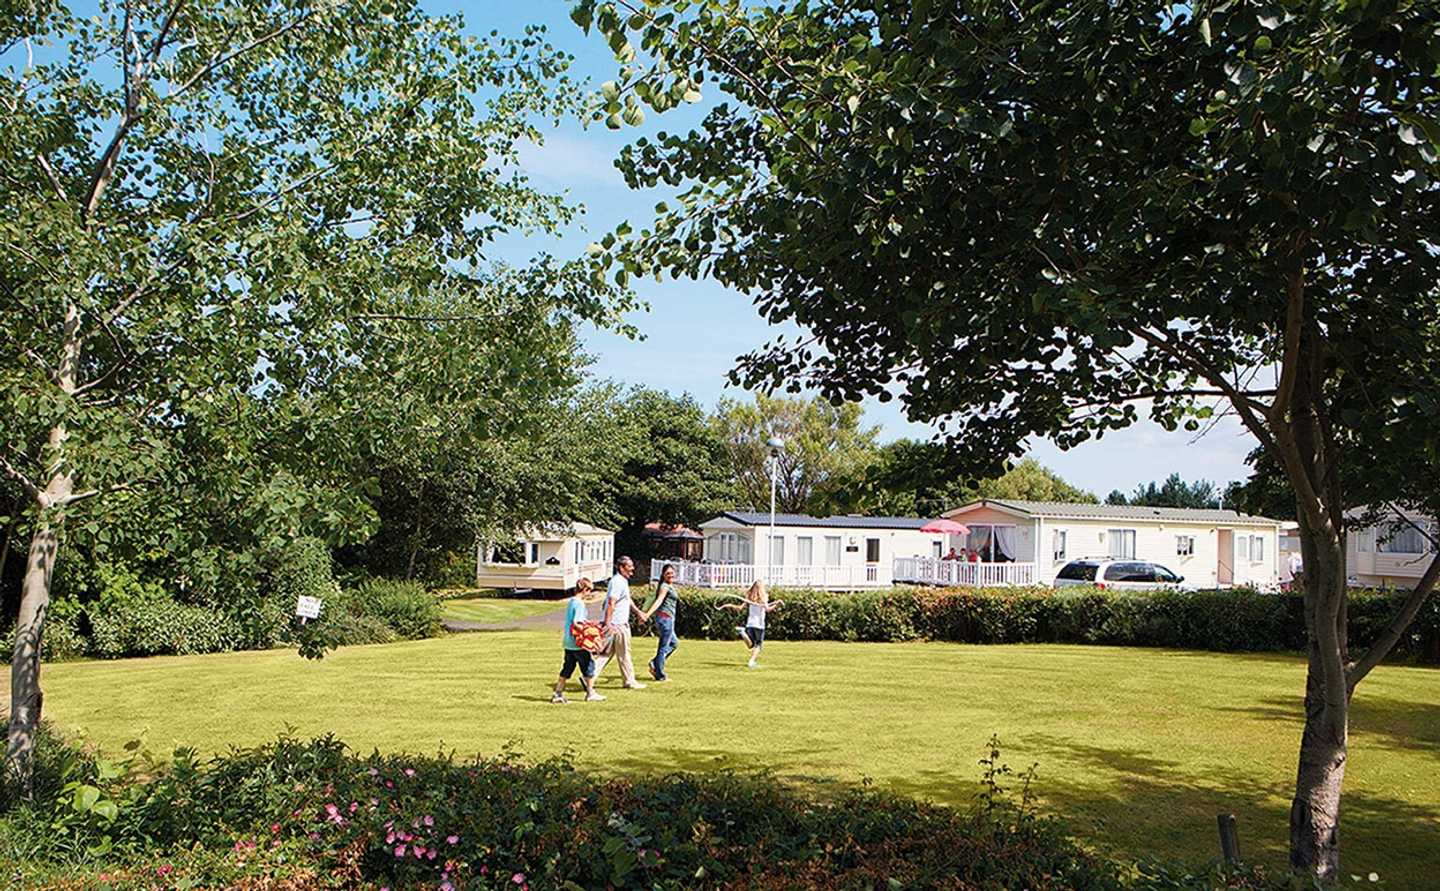 Guests playing outside their caravan at Seton Sands, Scotland